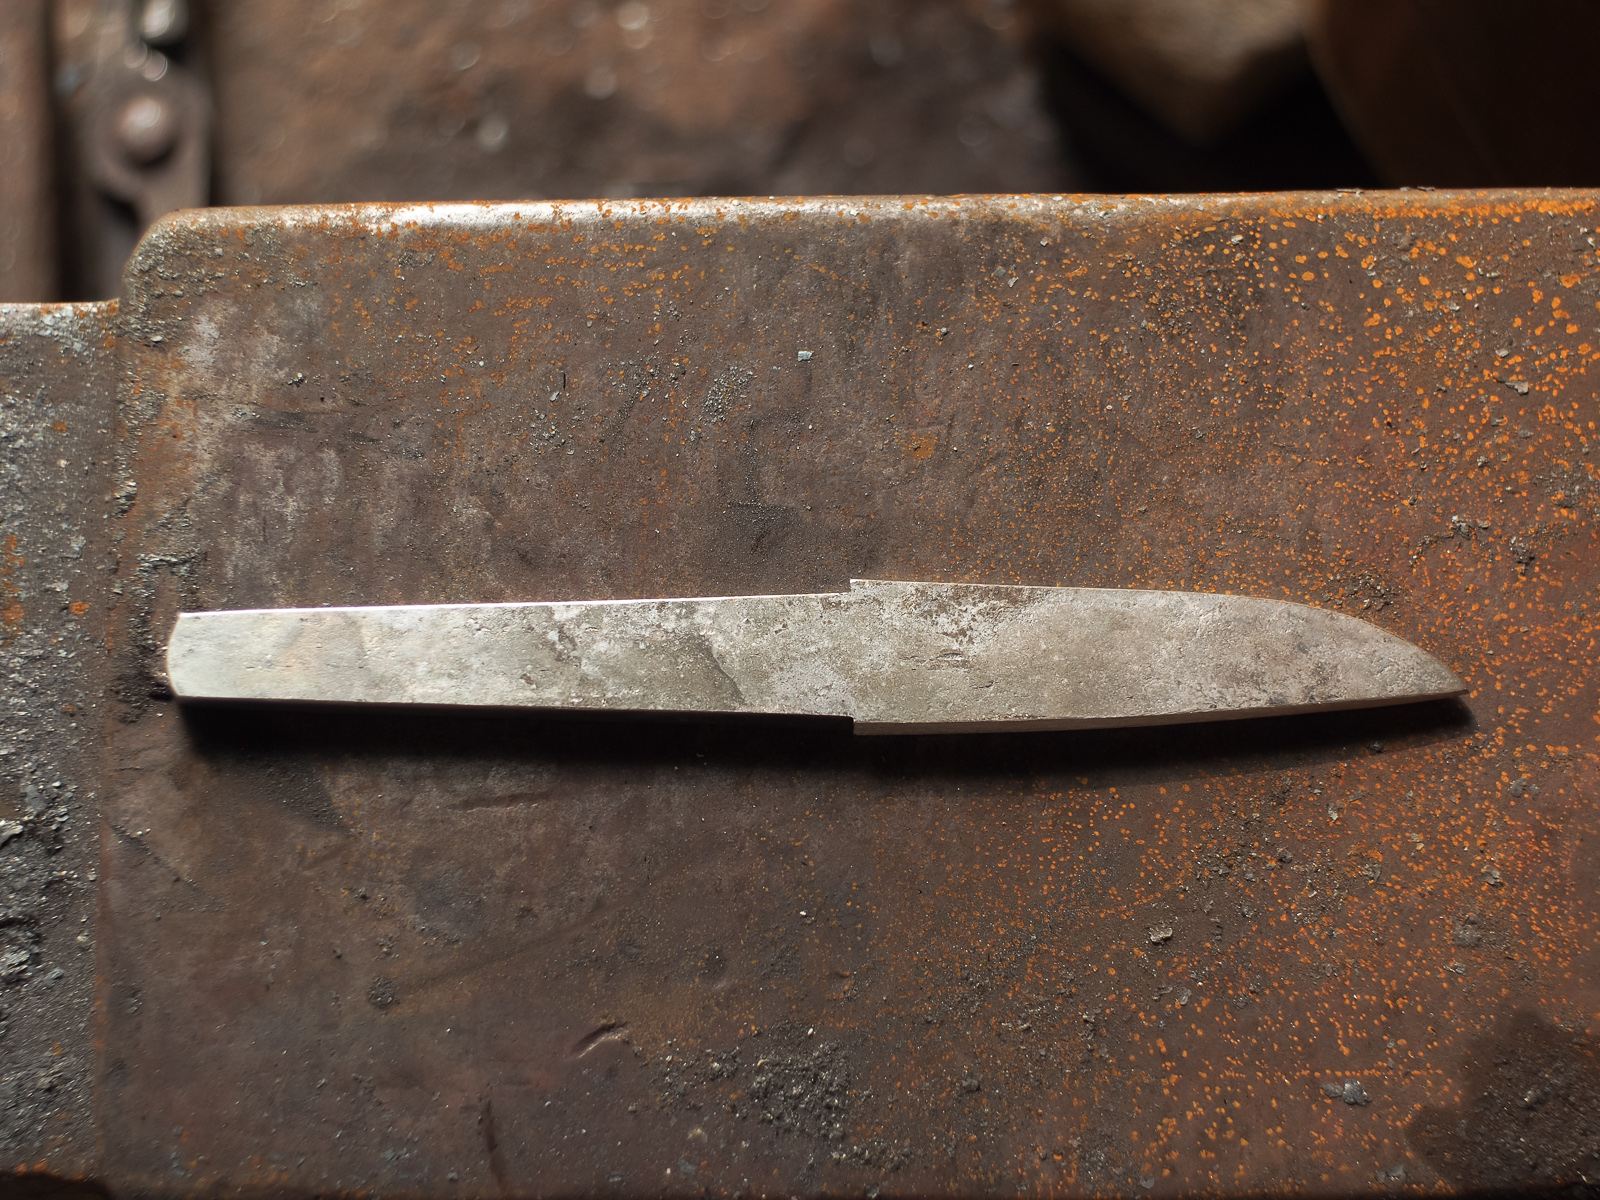 Island Blacksmith: Hand forged knives from reclaimed shear steel.